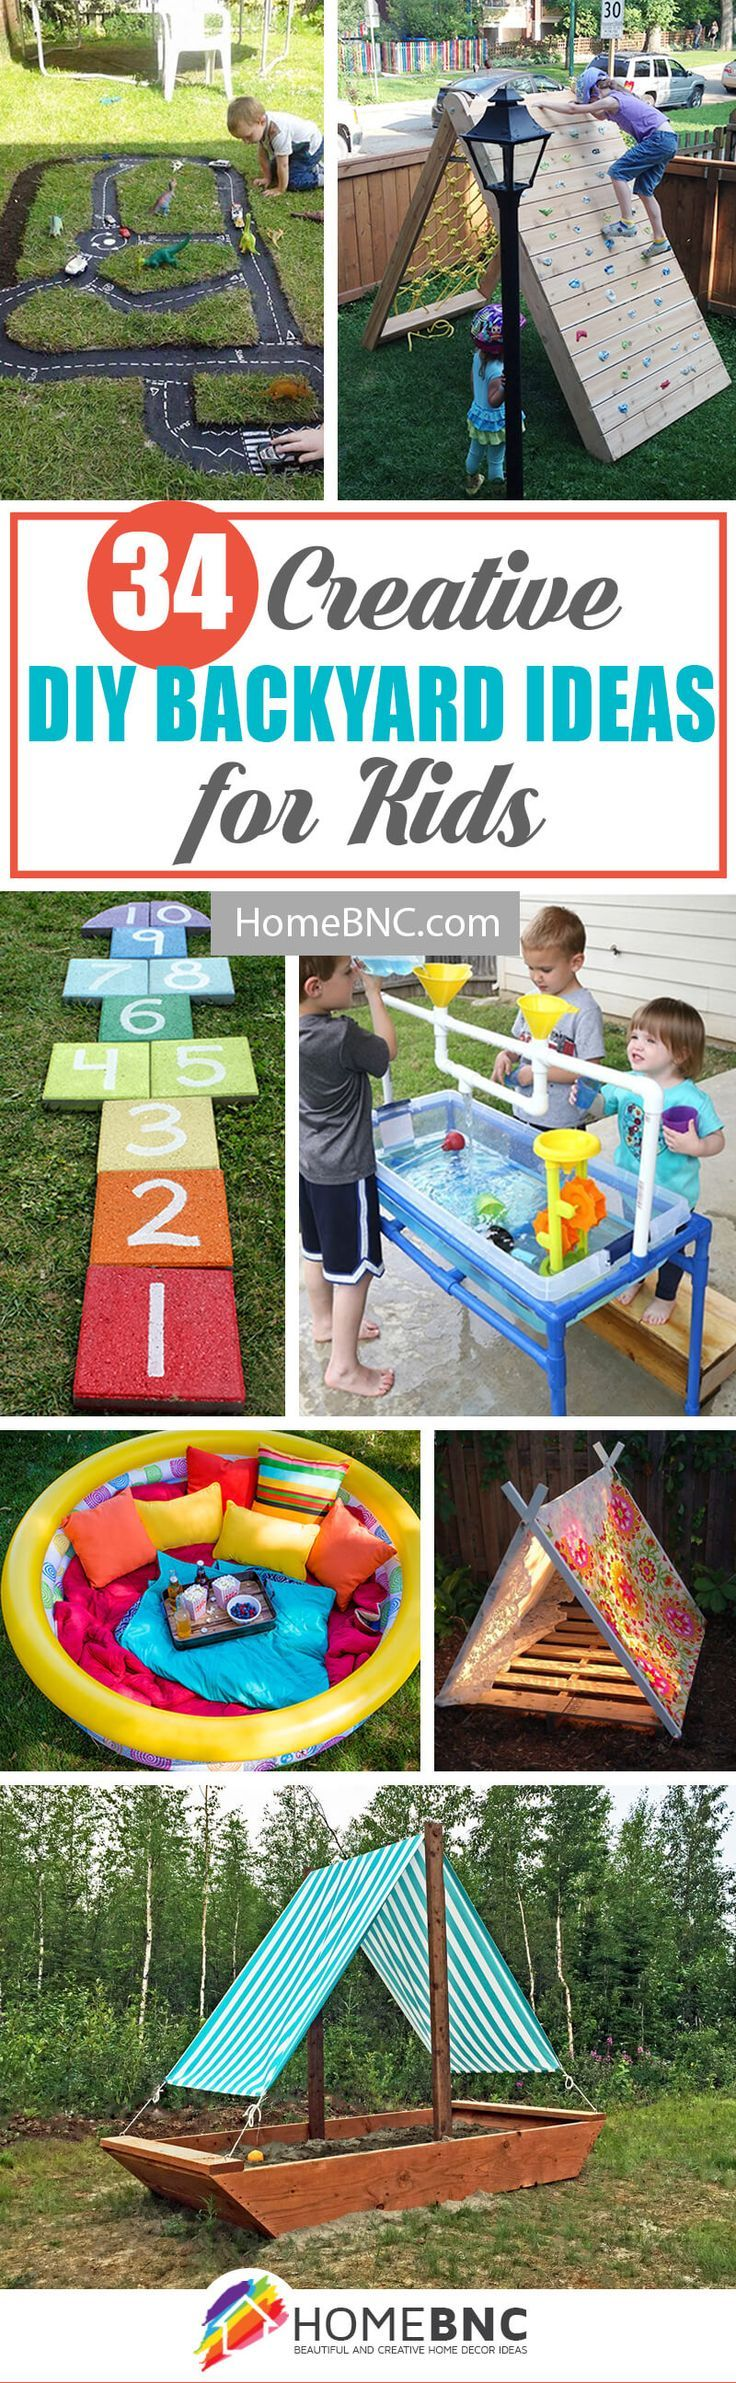 34 fantastic DIY backyard ideas for kids that are easy to create